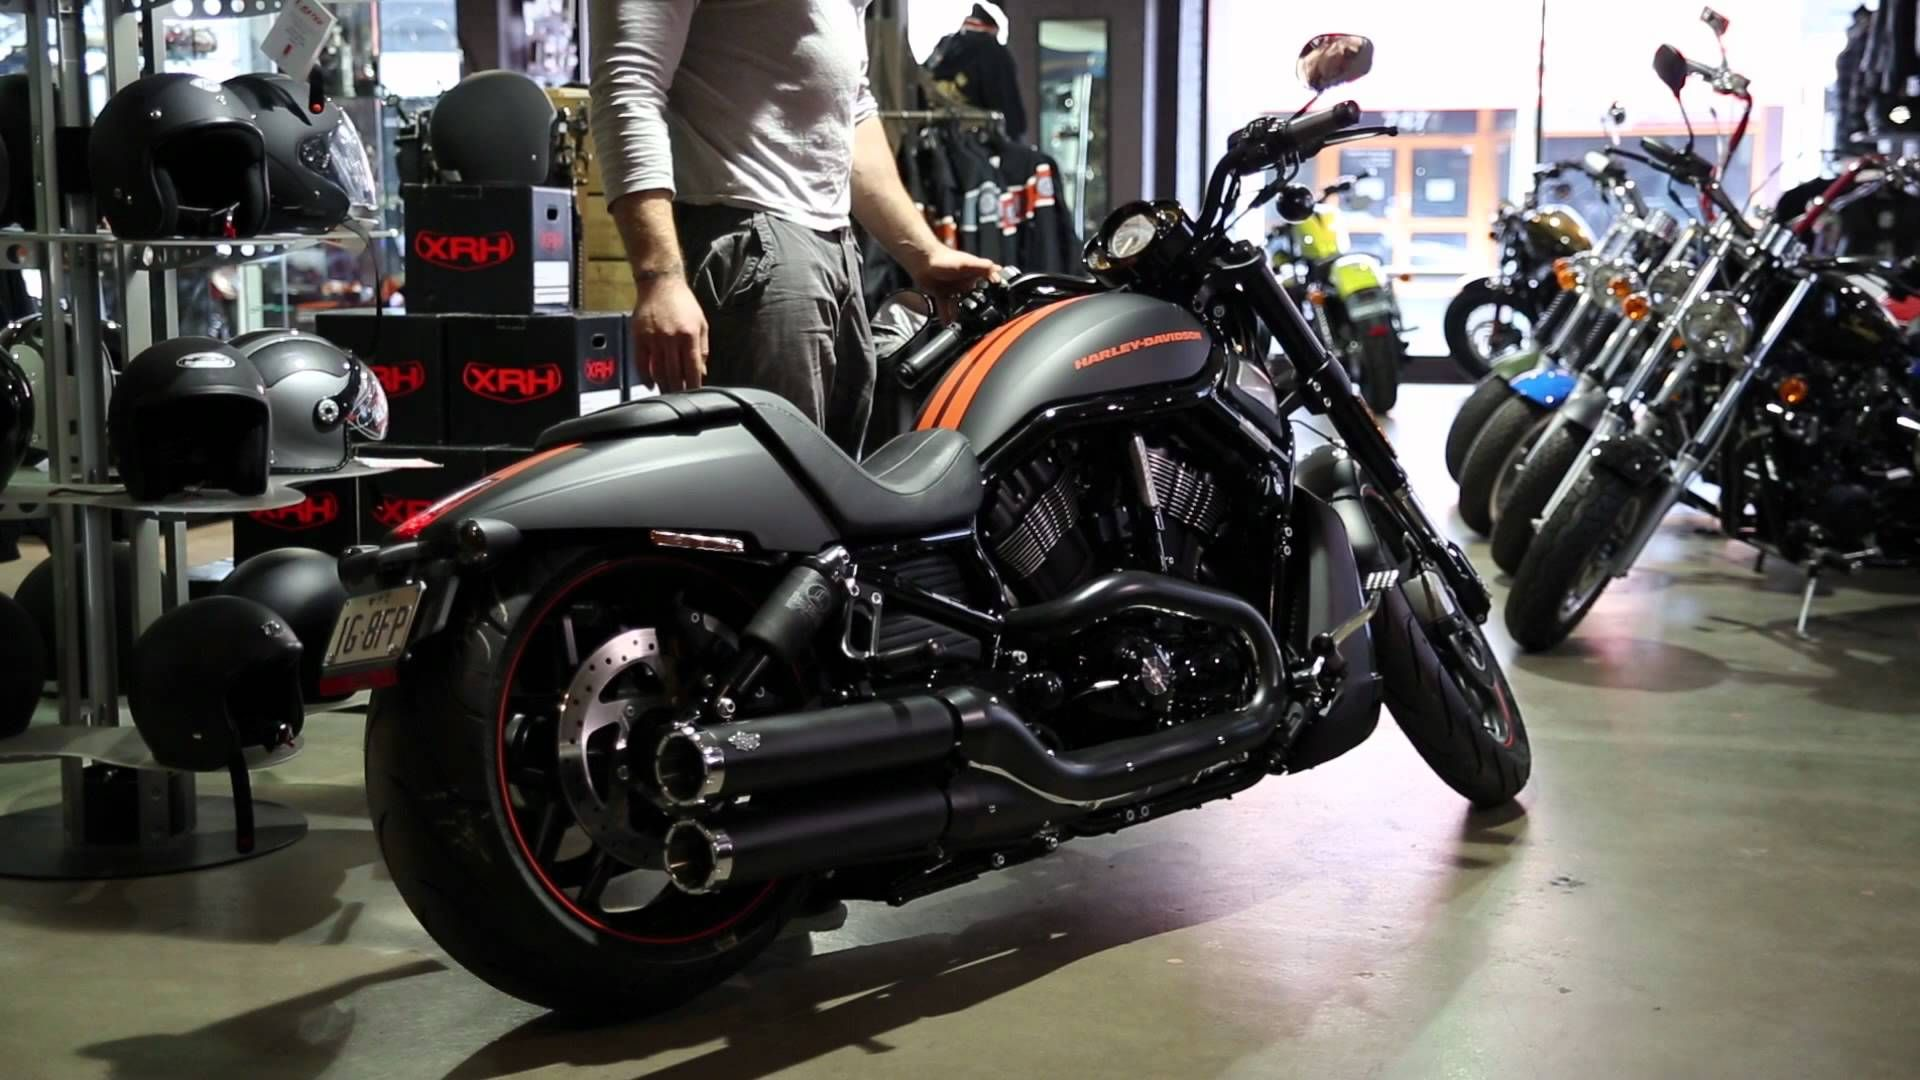 Harley City testing out the 2013 Night Rod Special with